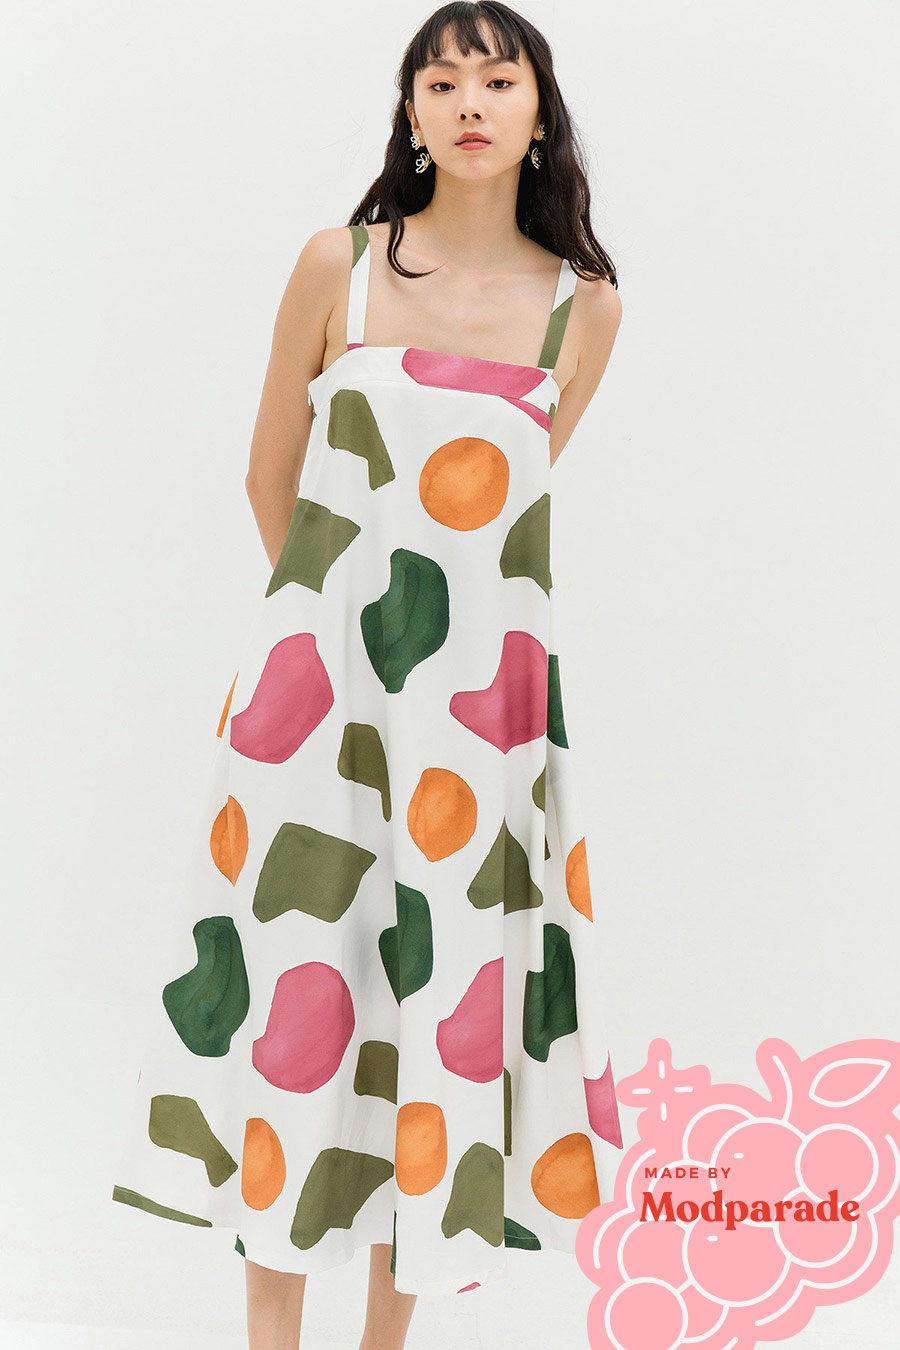 *RESTOCKED* FILY DRESS - SERENE [BY MODPARADE]